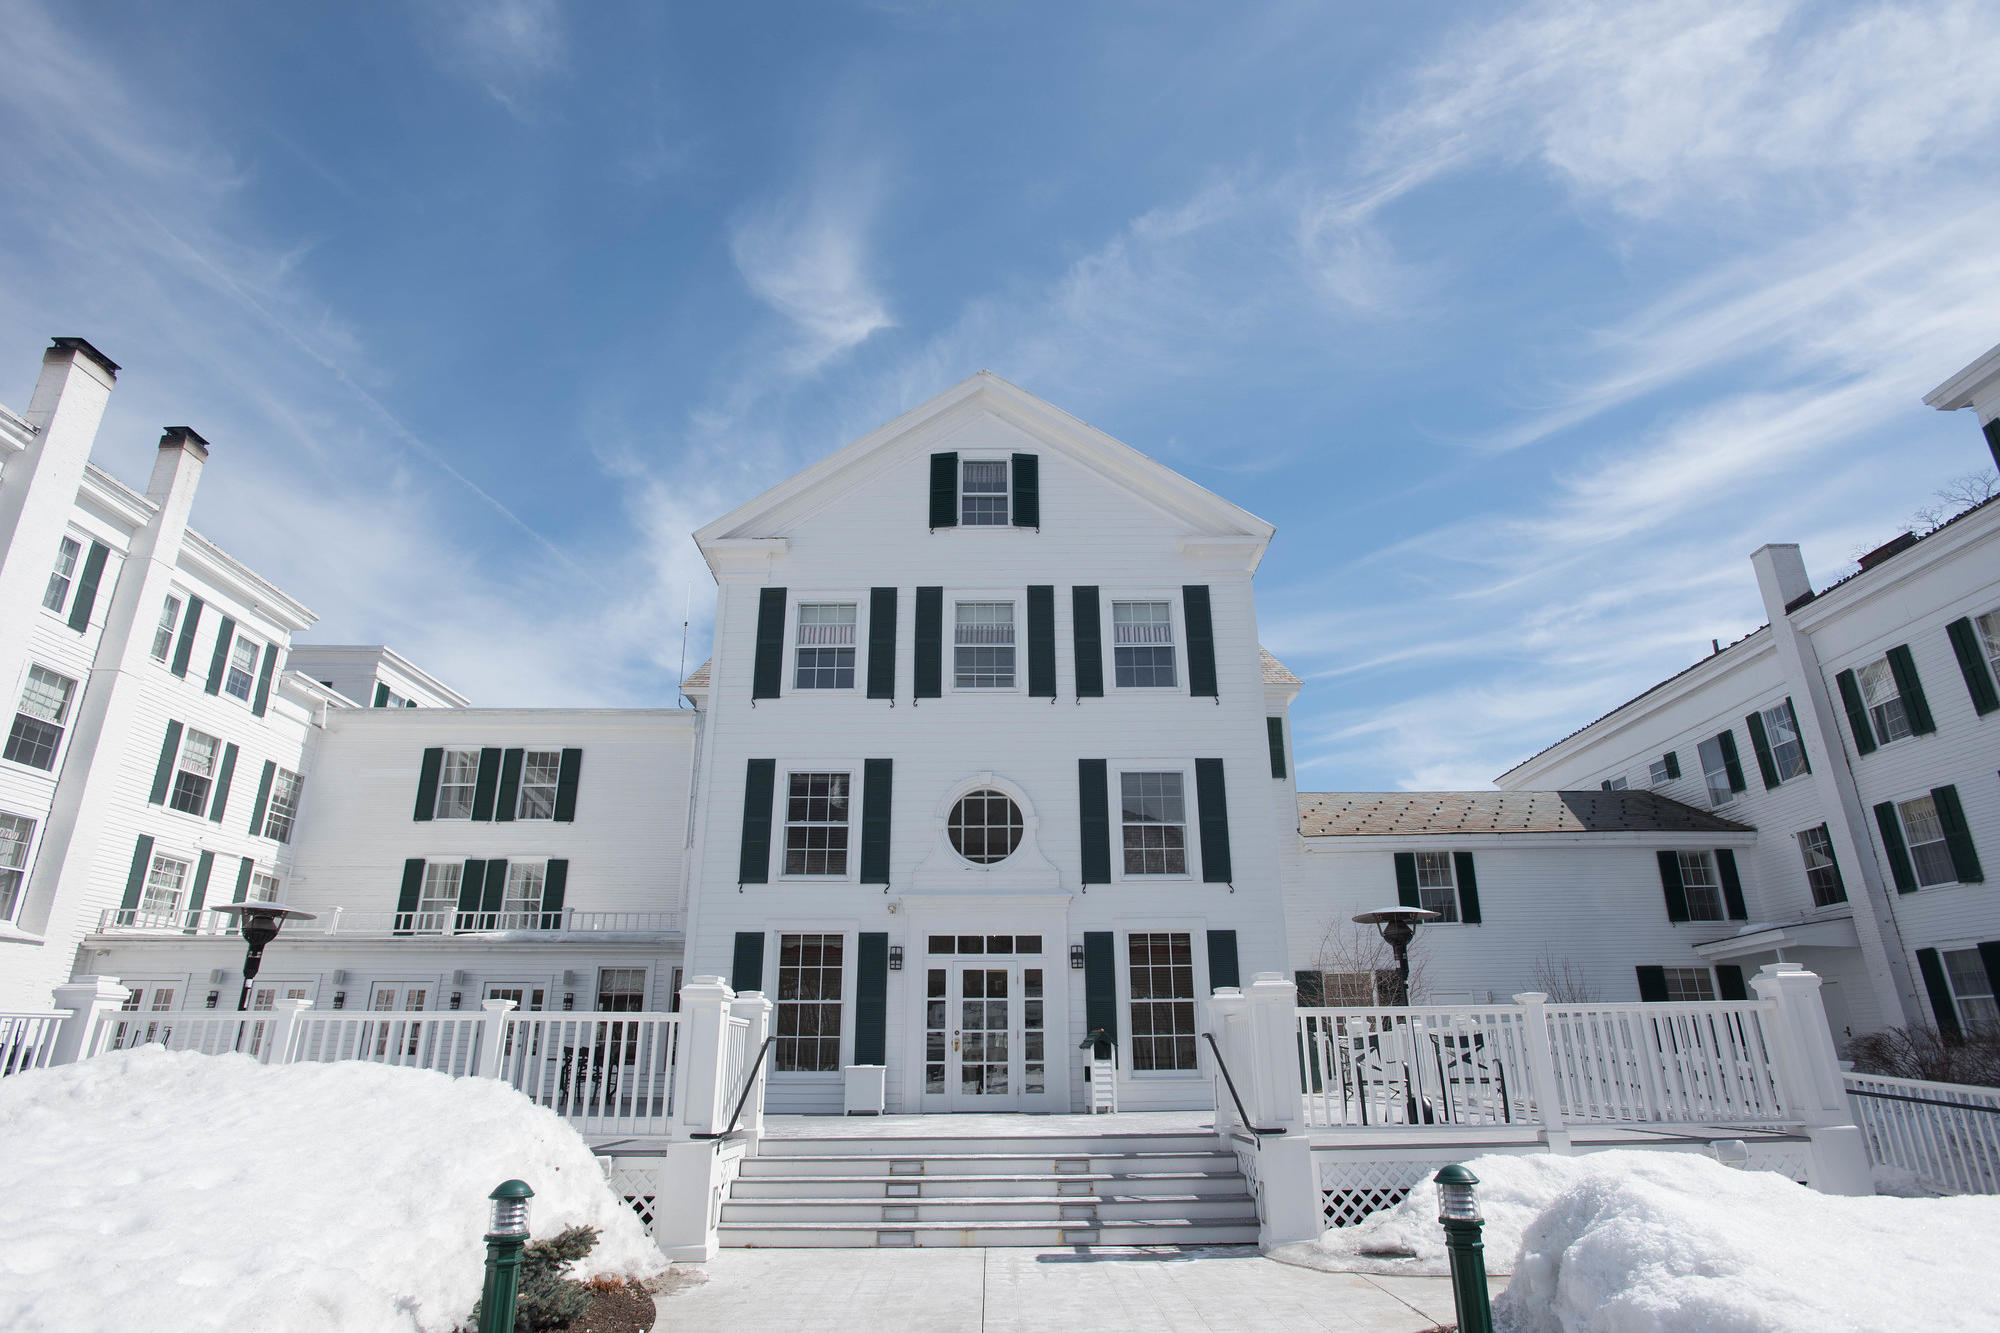 The beautiful The Equinox hotel in Manchester, Vermont